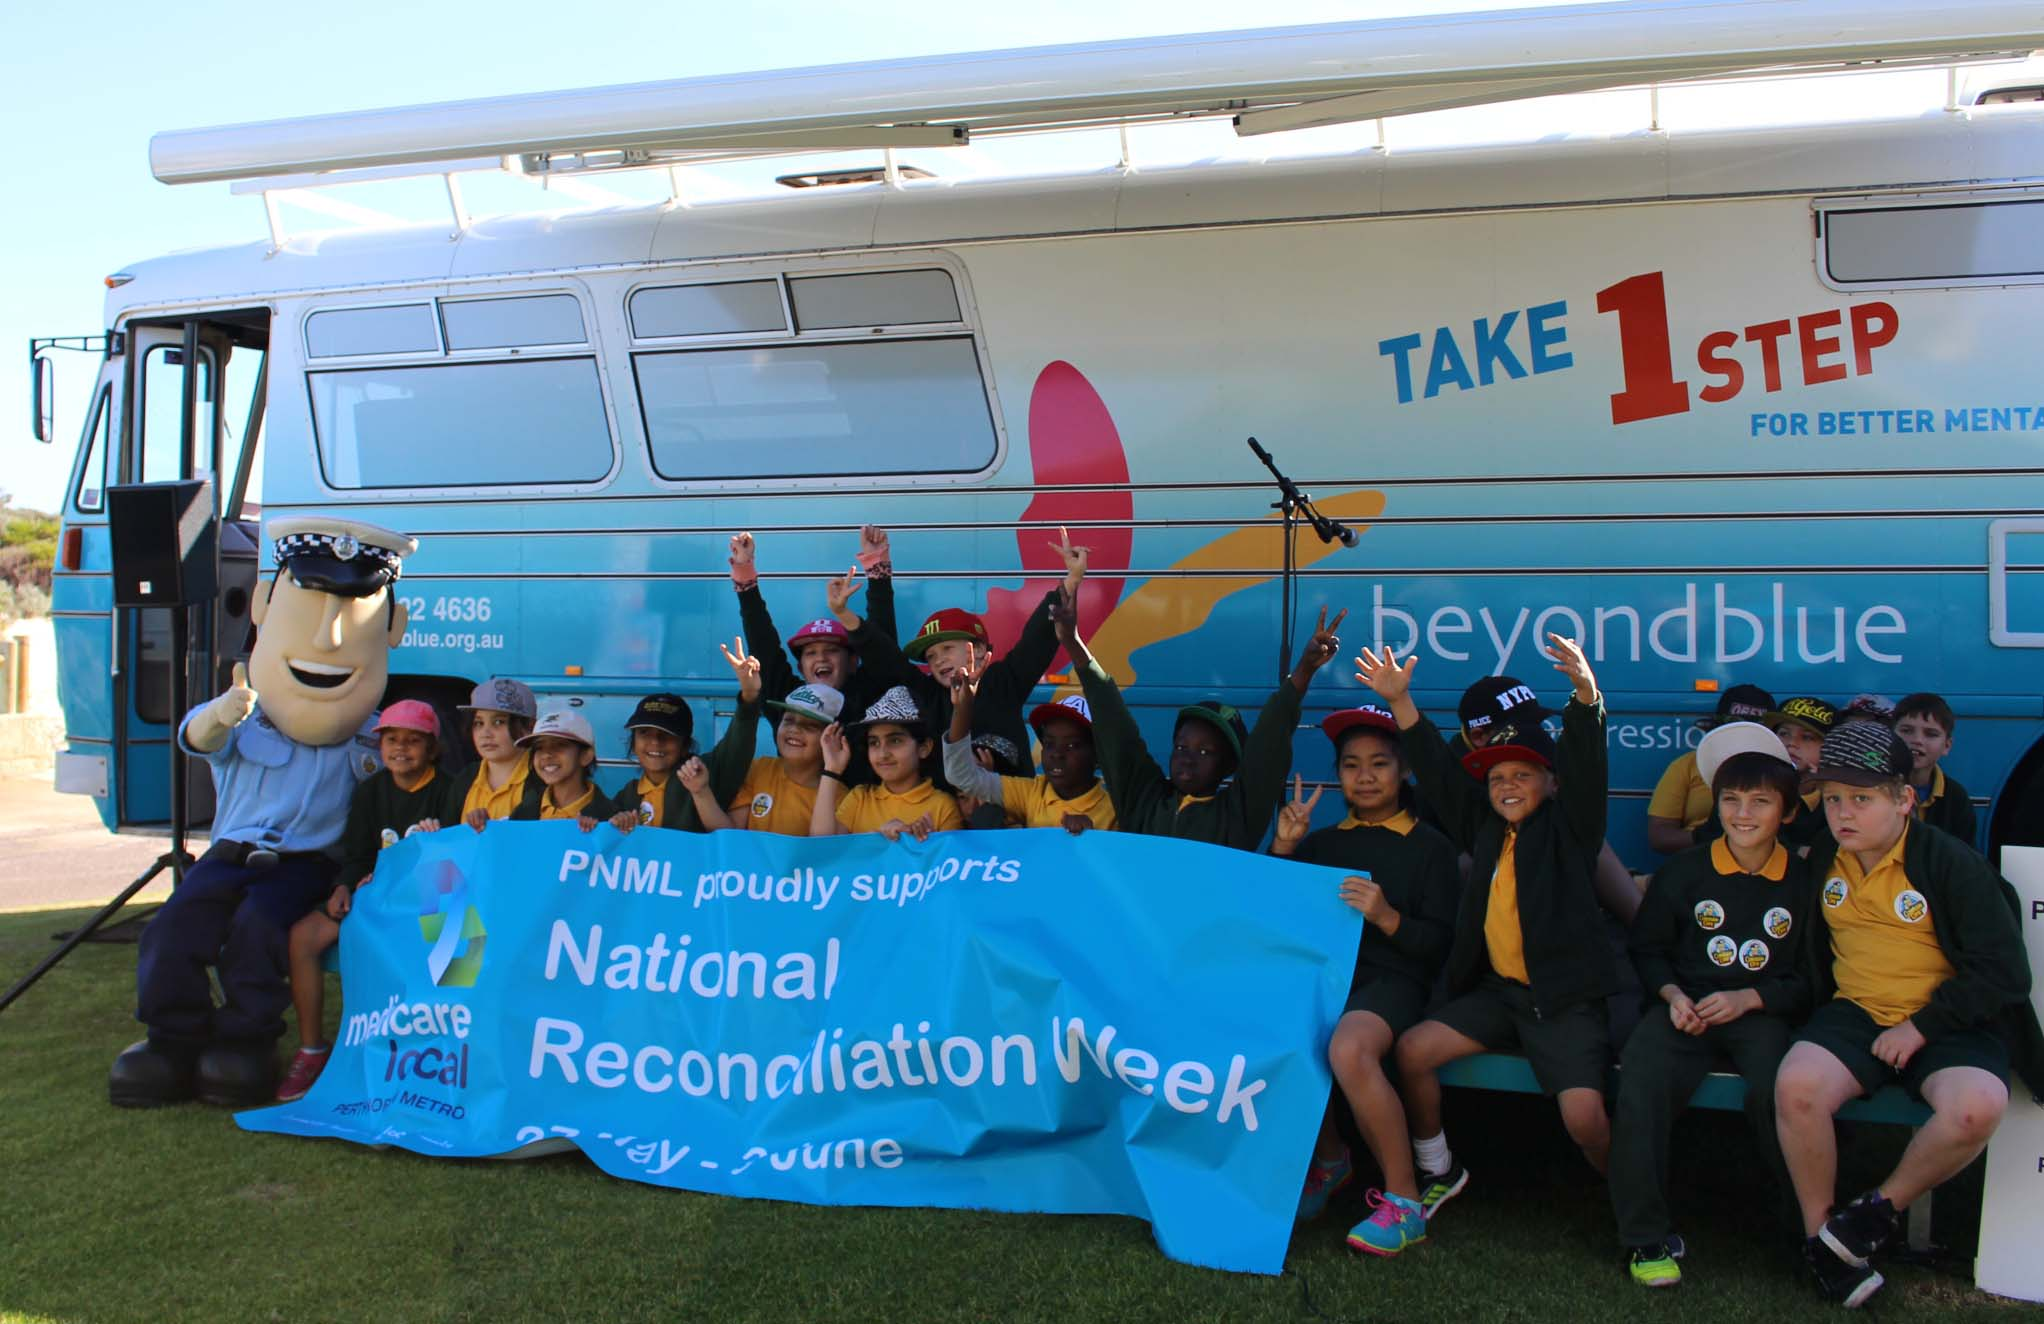 School kids with Constable Care at the Reconciliation Week event in Scarborough.